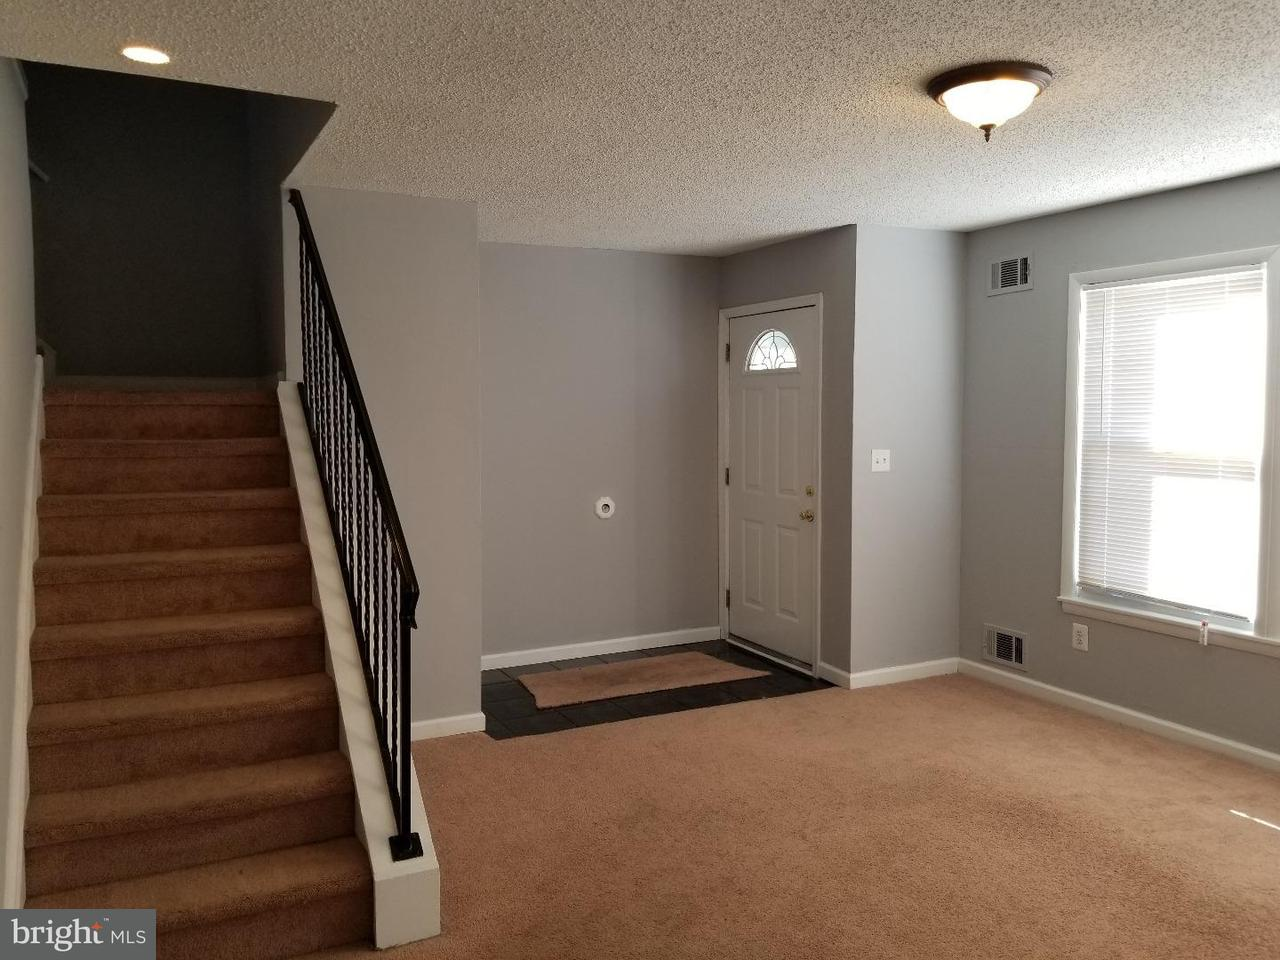 Townhouse for Rent at 32 PTOLEMY Court Sewell, New Jersey 08080 United States